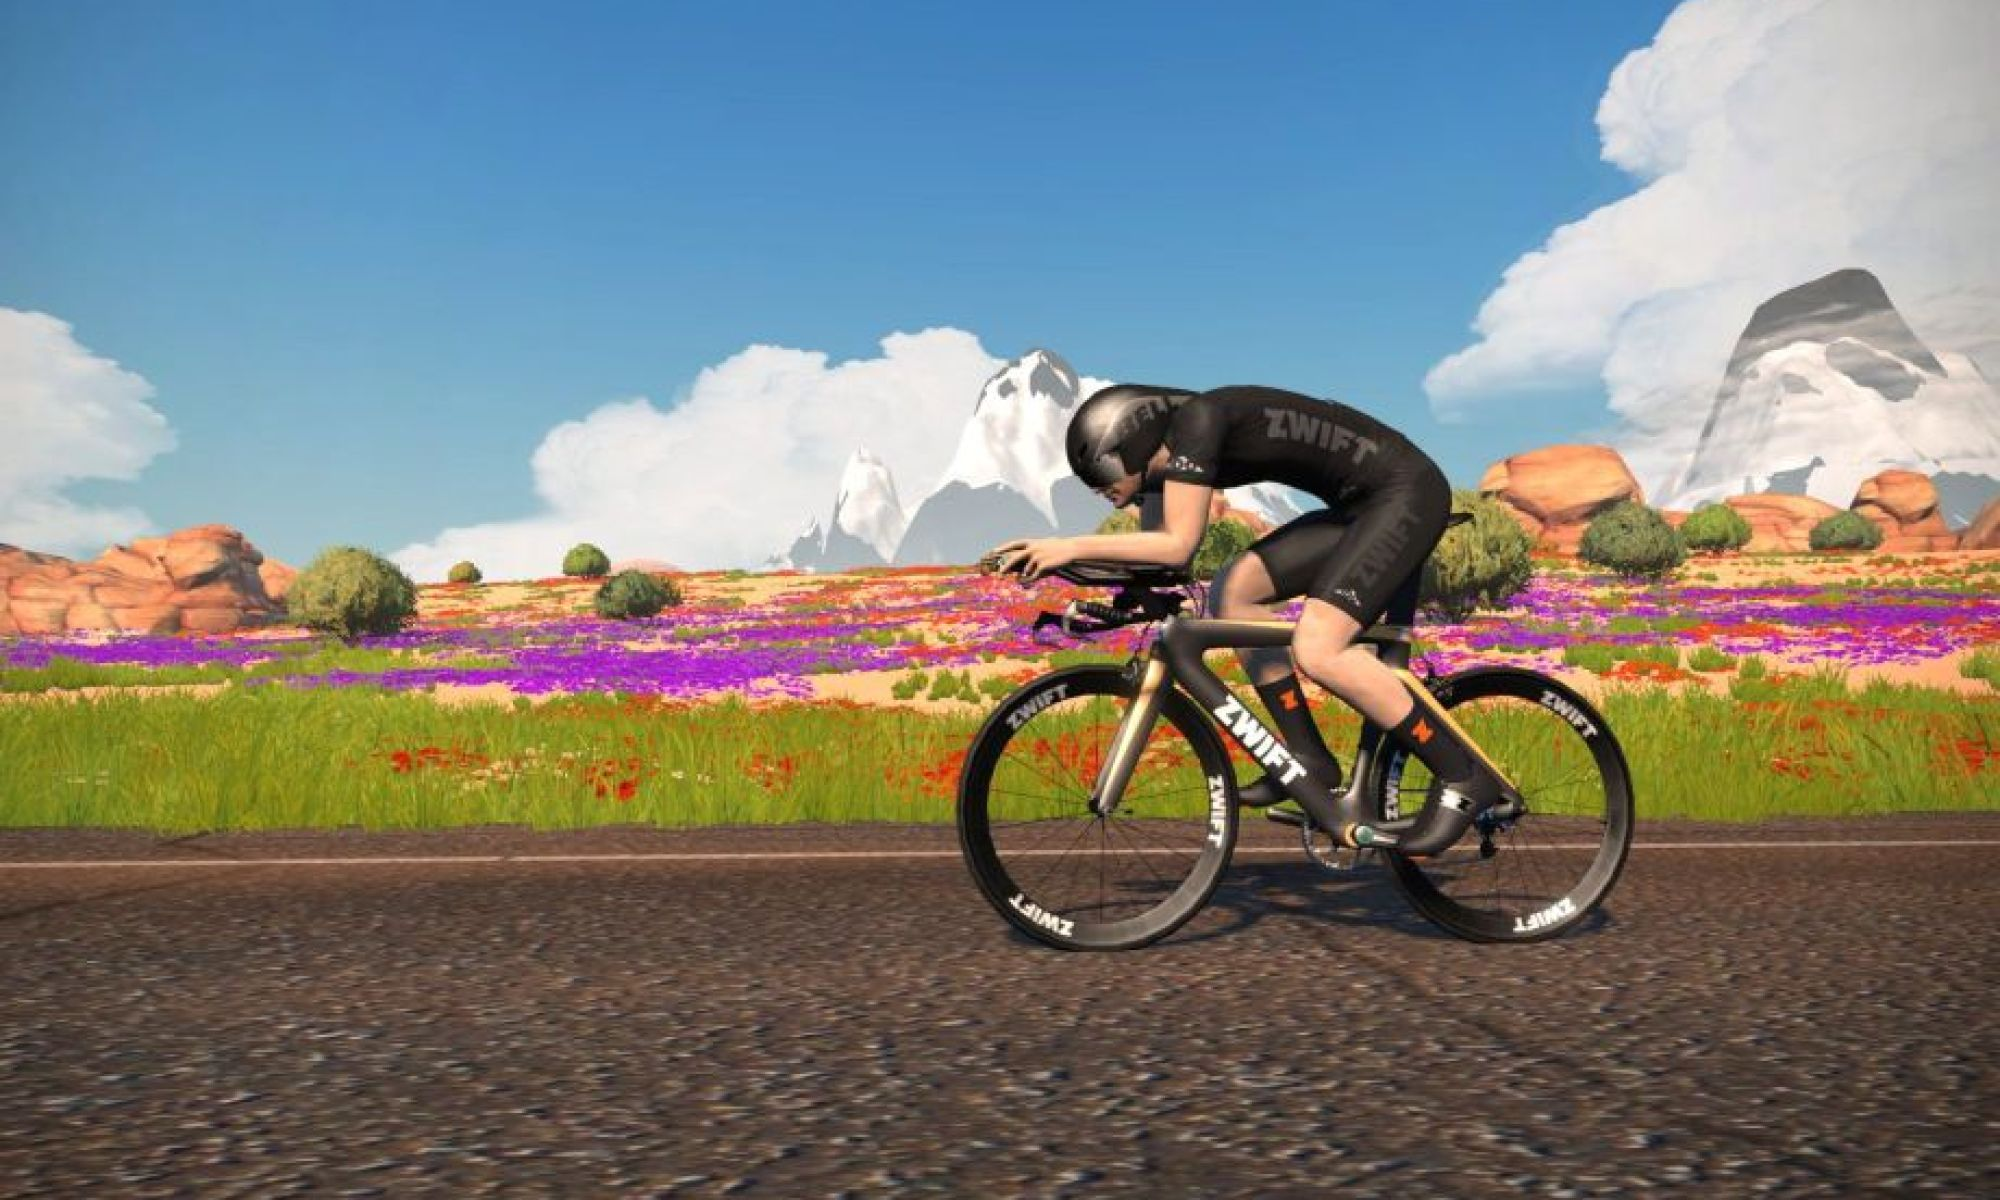 Enter the Cycling Weekly club ten on Zwift